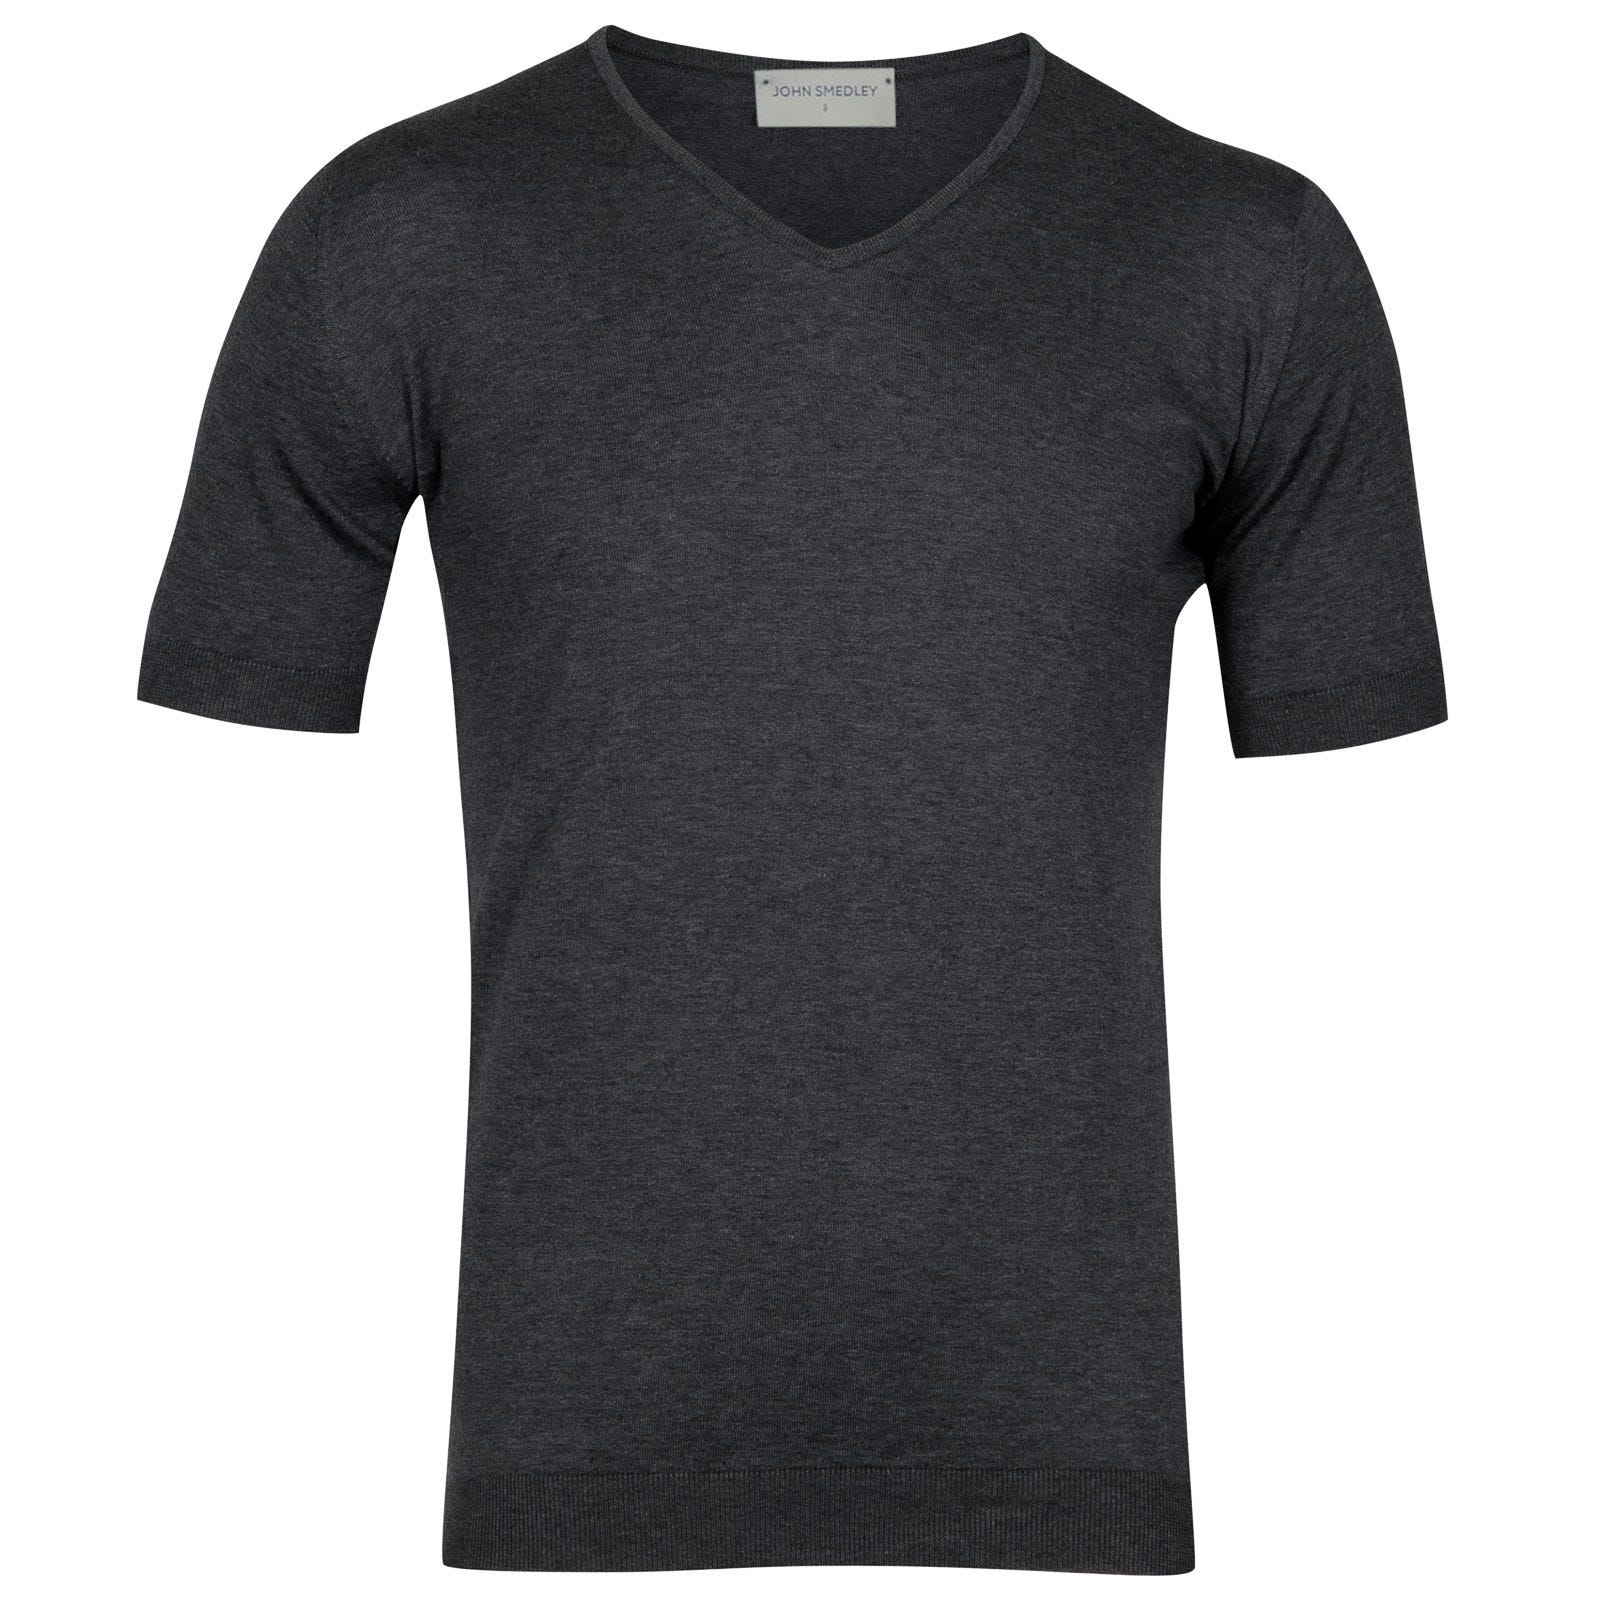 John Smedley Braedon Sea Island Cotton T-shirt in Charcoal-XXL